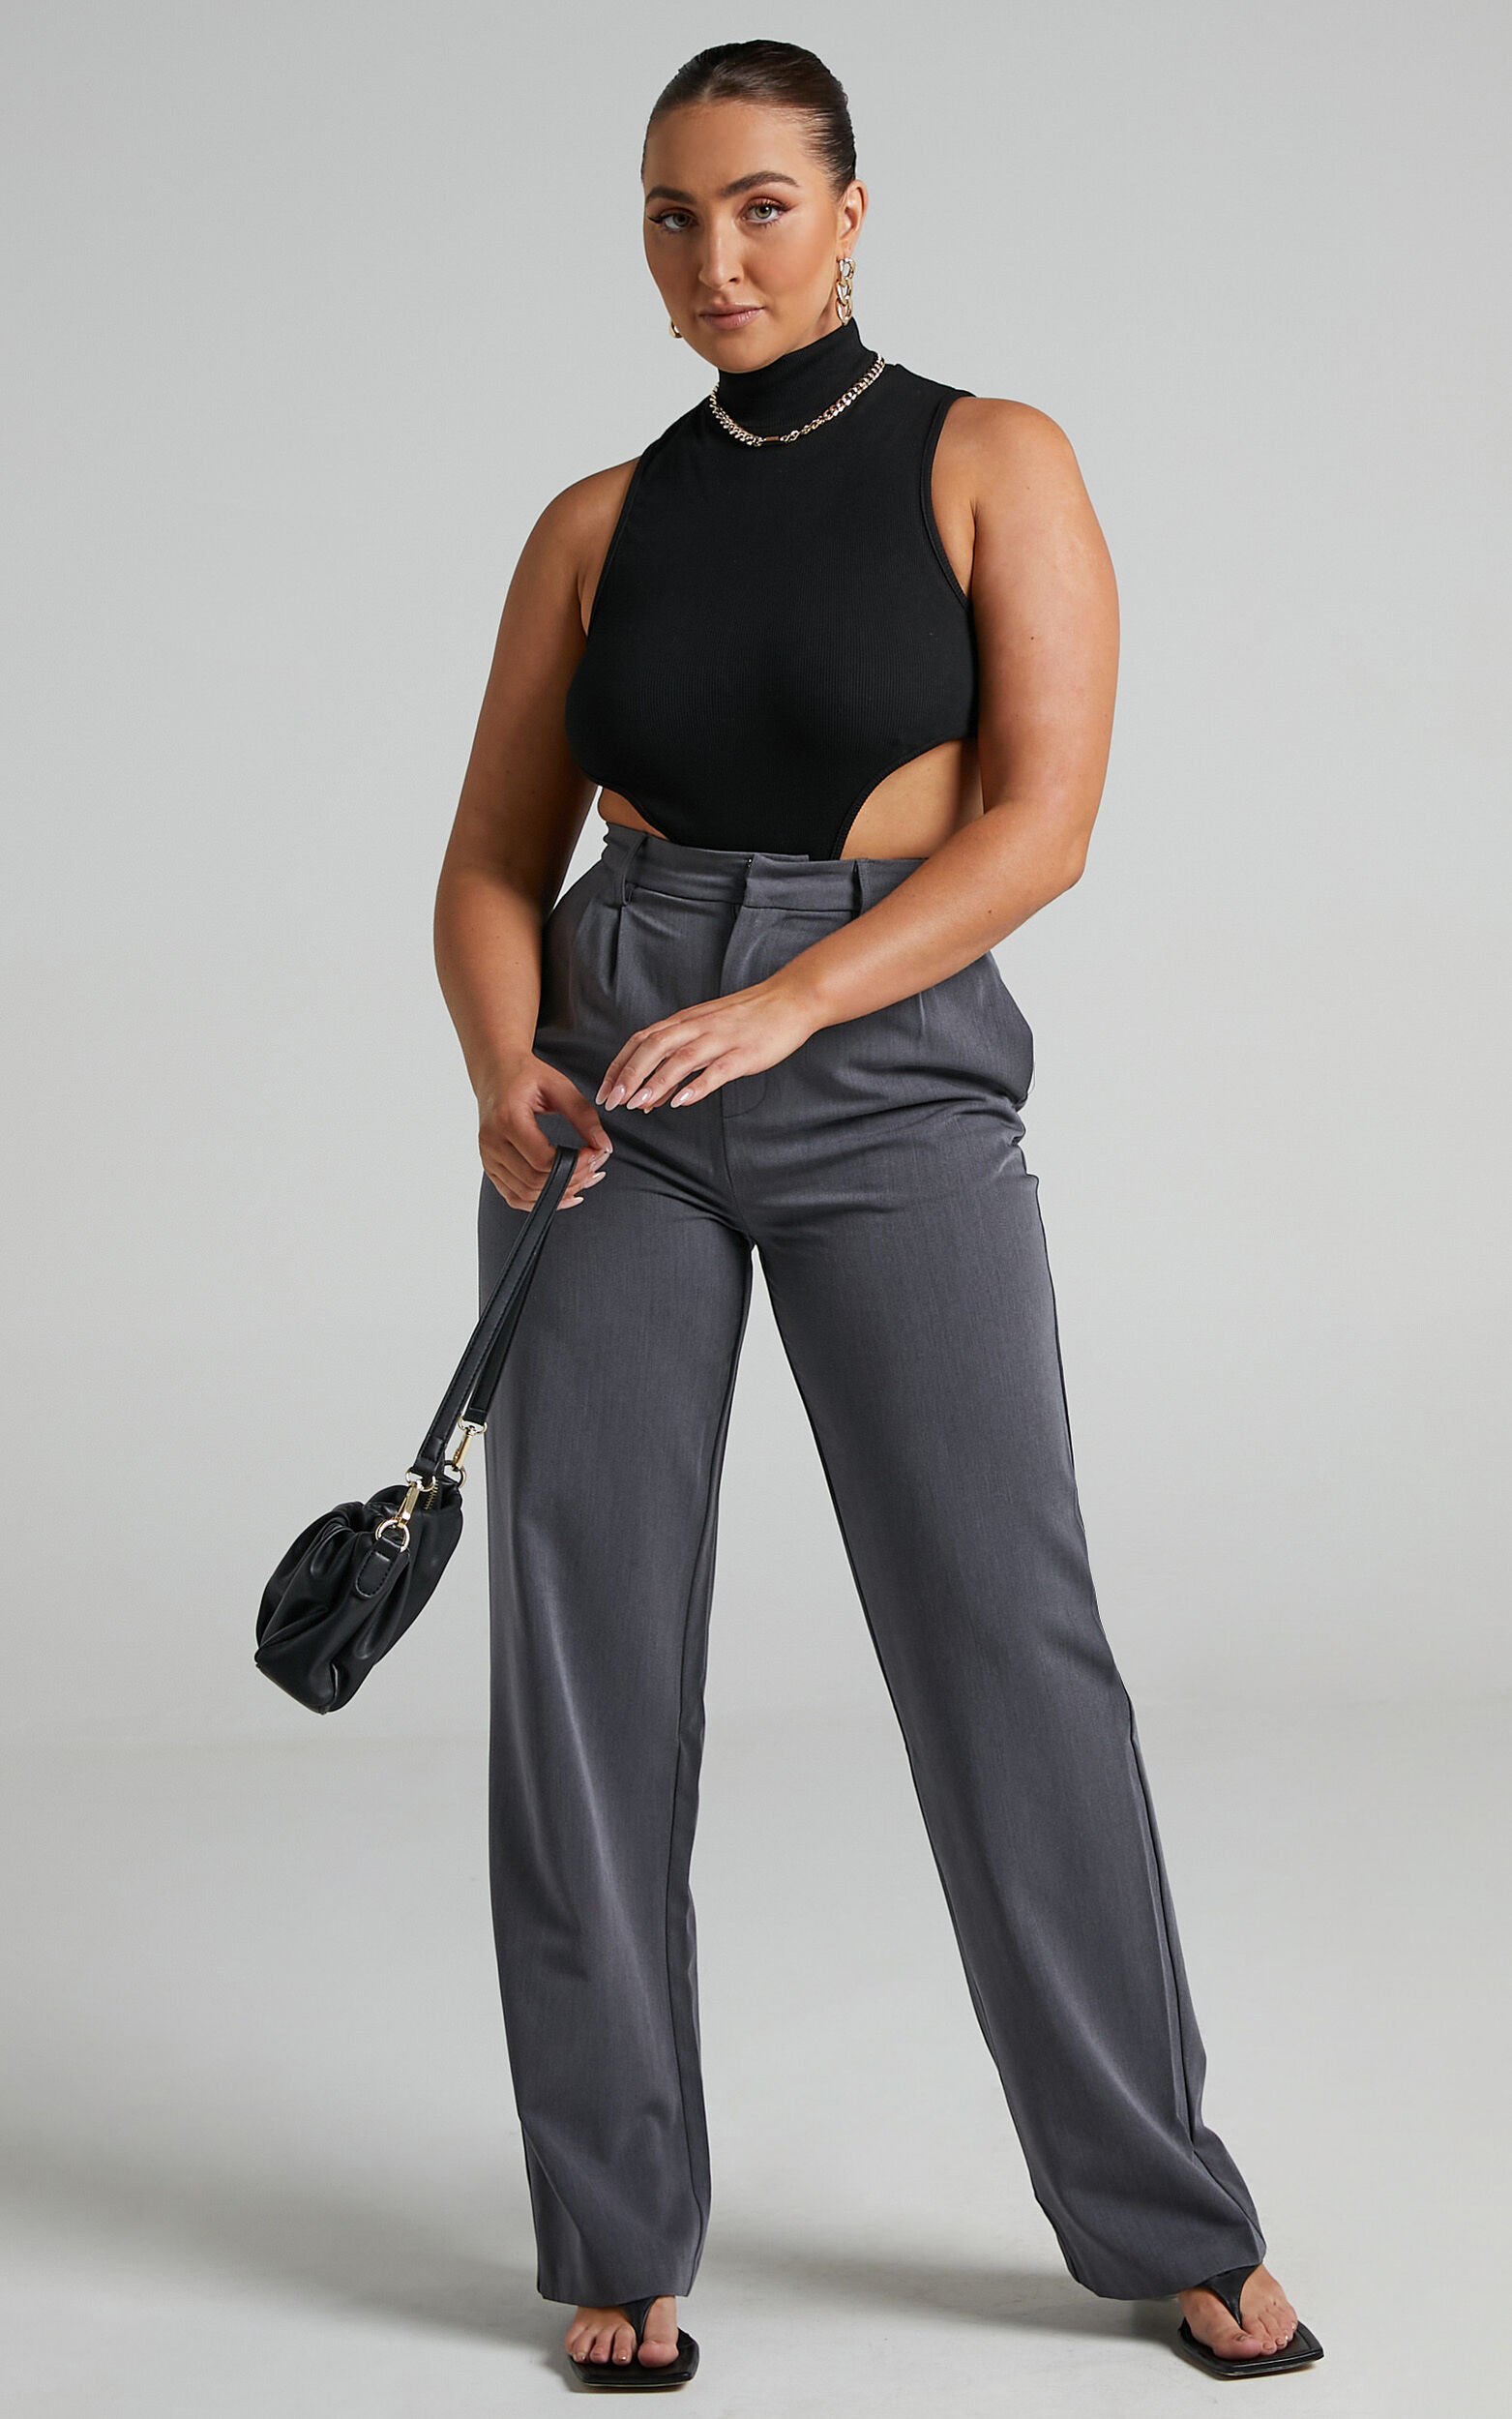 Lorcan High Waisted Tailored Pants in Charcoal - 04, GRY1, super-hi-res image number null